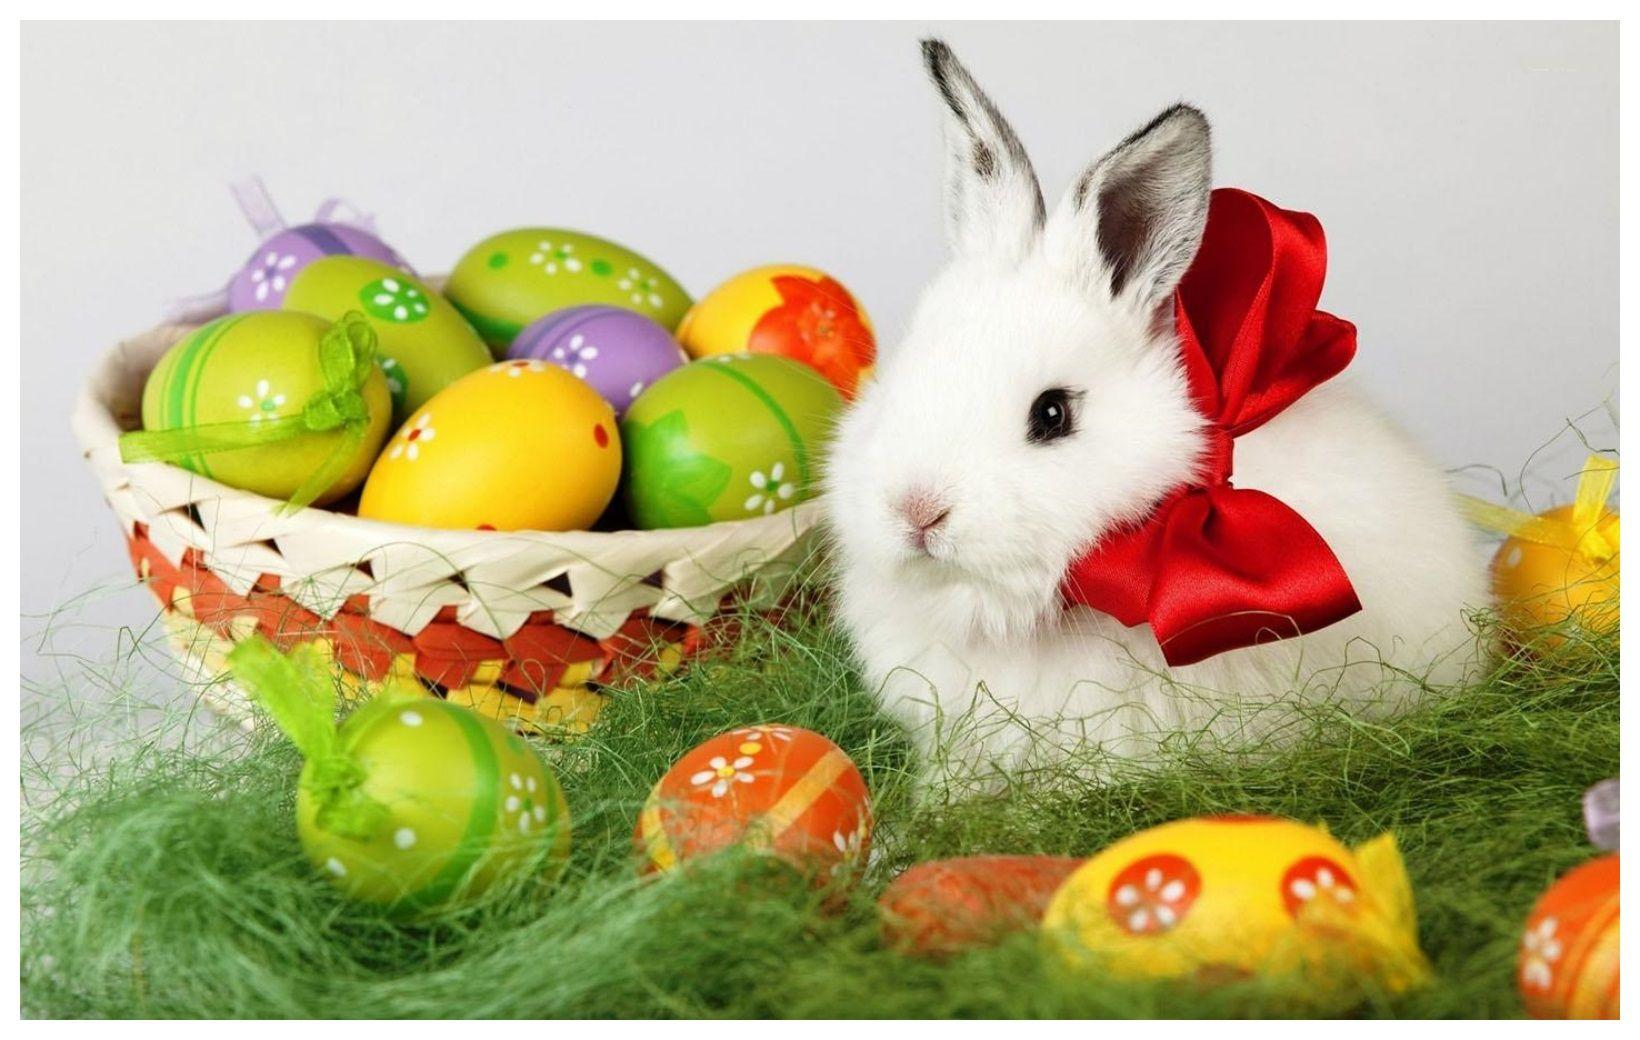 Easter Bunny HD Wallpapers - Wallpaper Cave